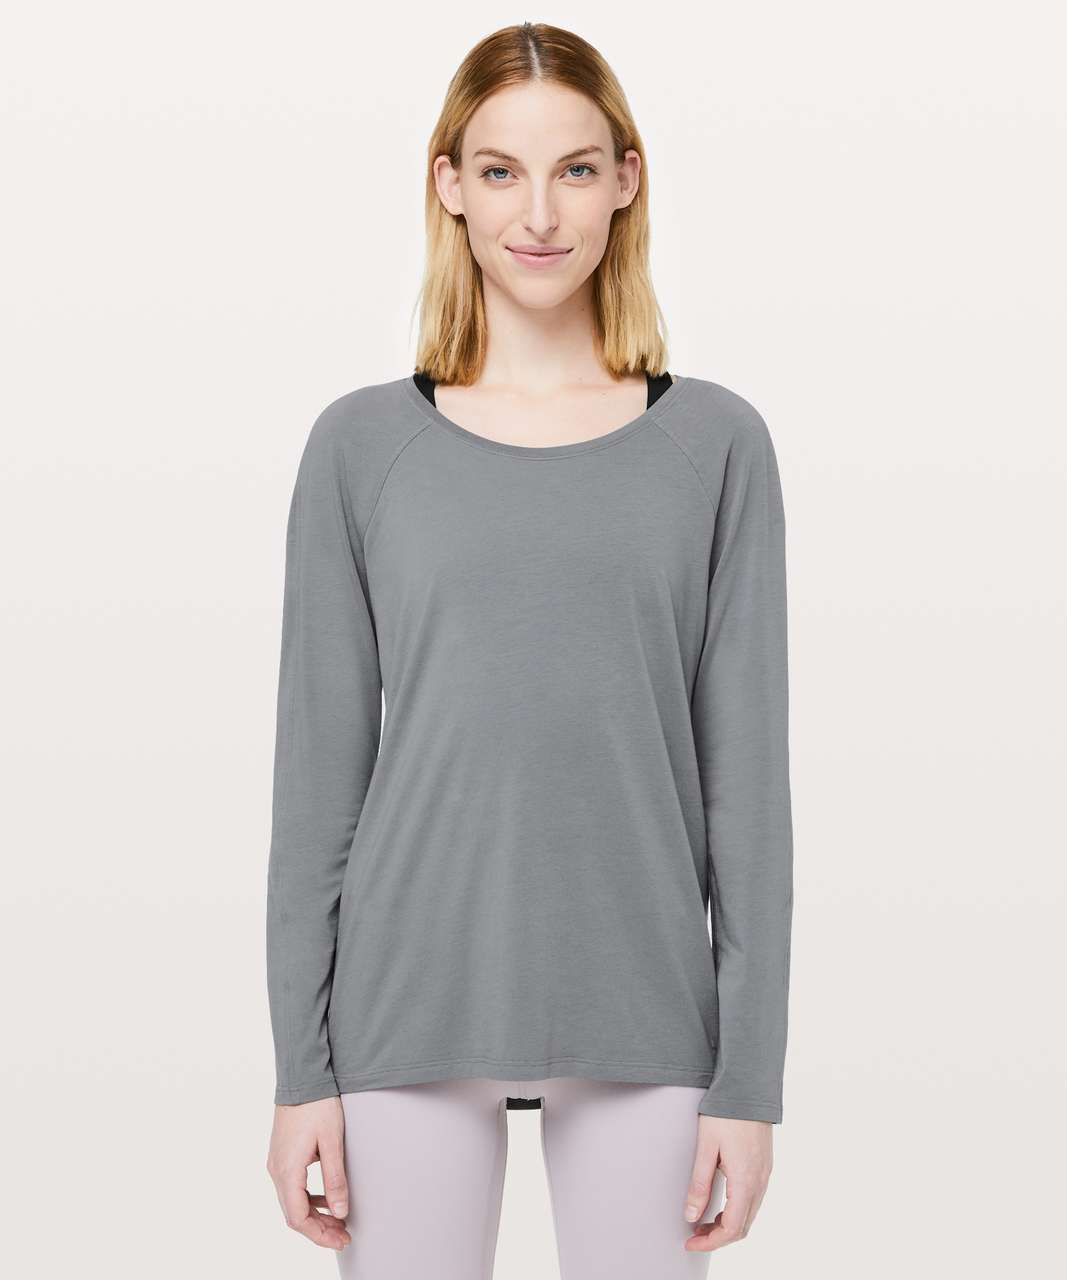 Lululemon Emerald Long Sleeve - Steam Blue